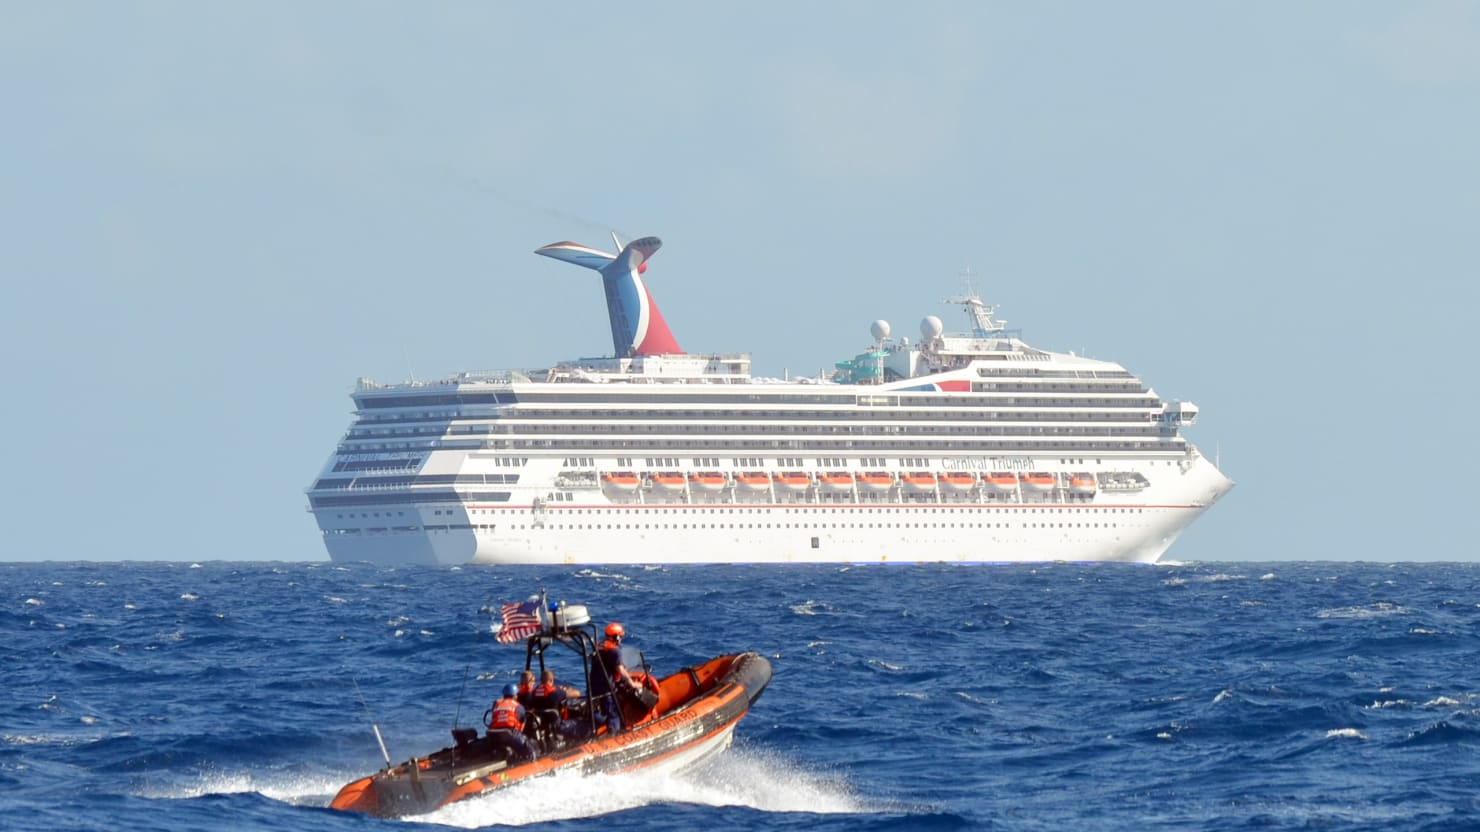 Five Cruise Ship Horror Stories - Cruise ship crimes